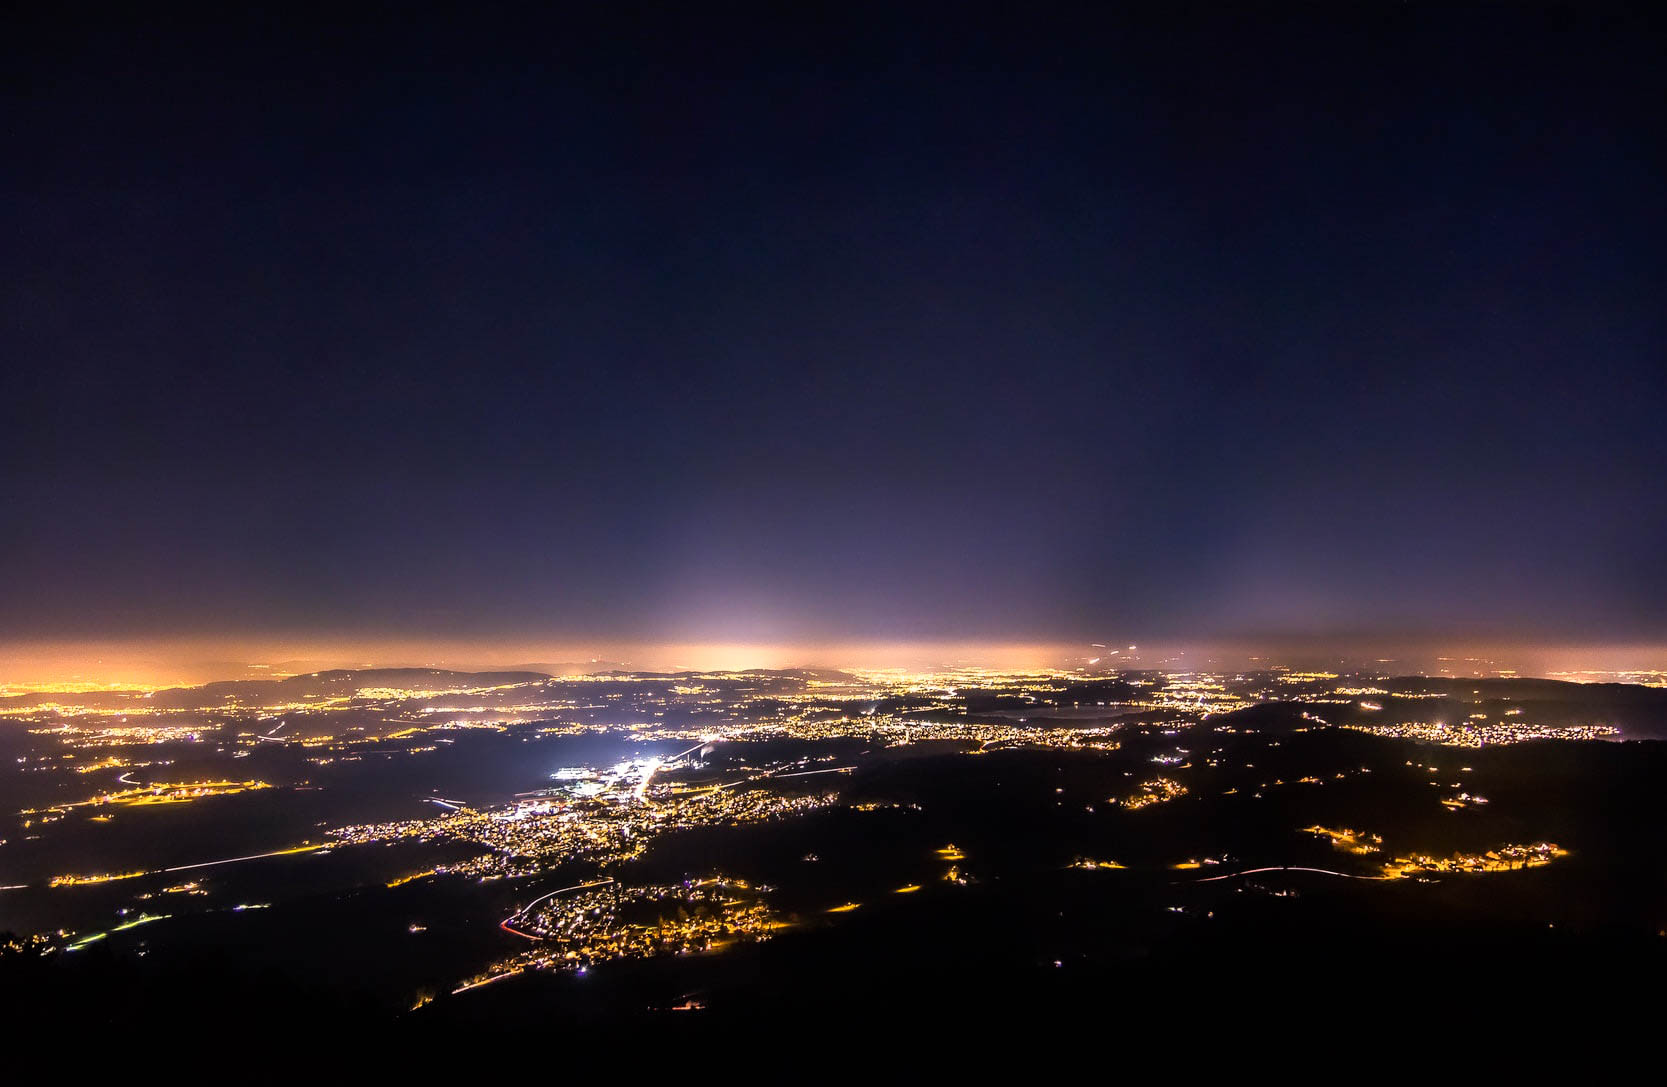 Lighting pollution of a city